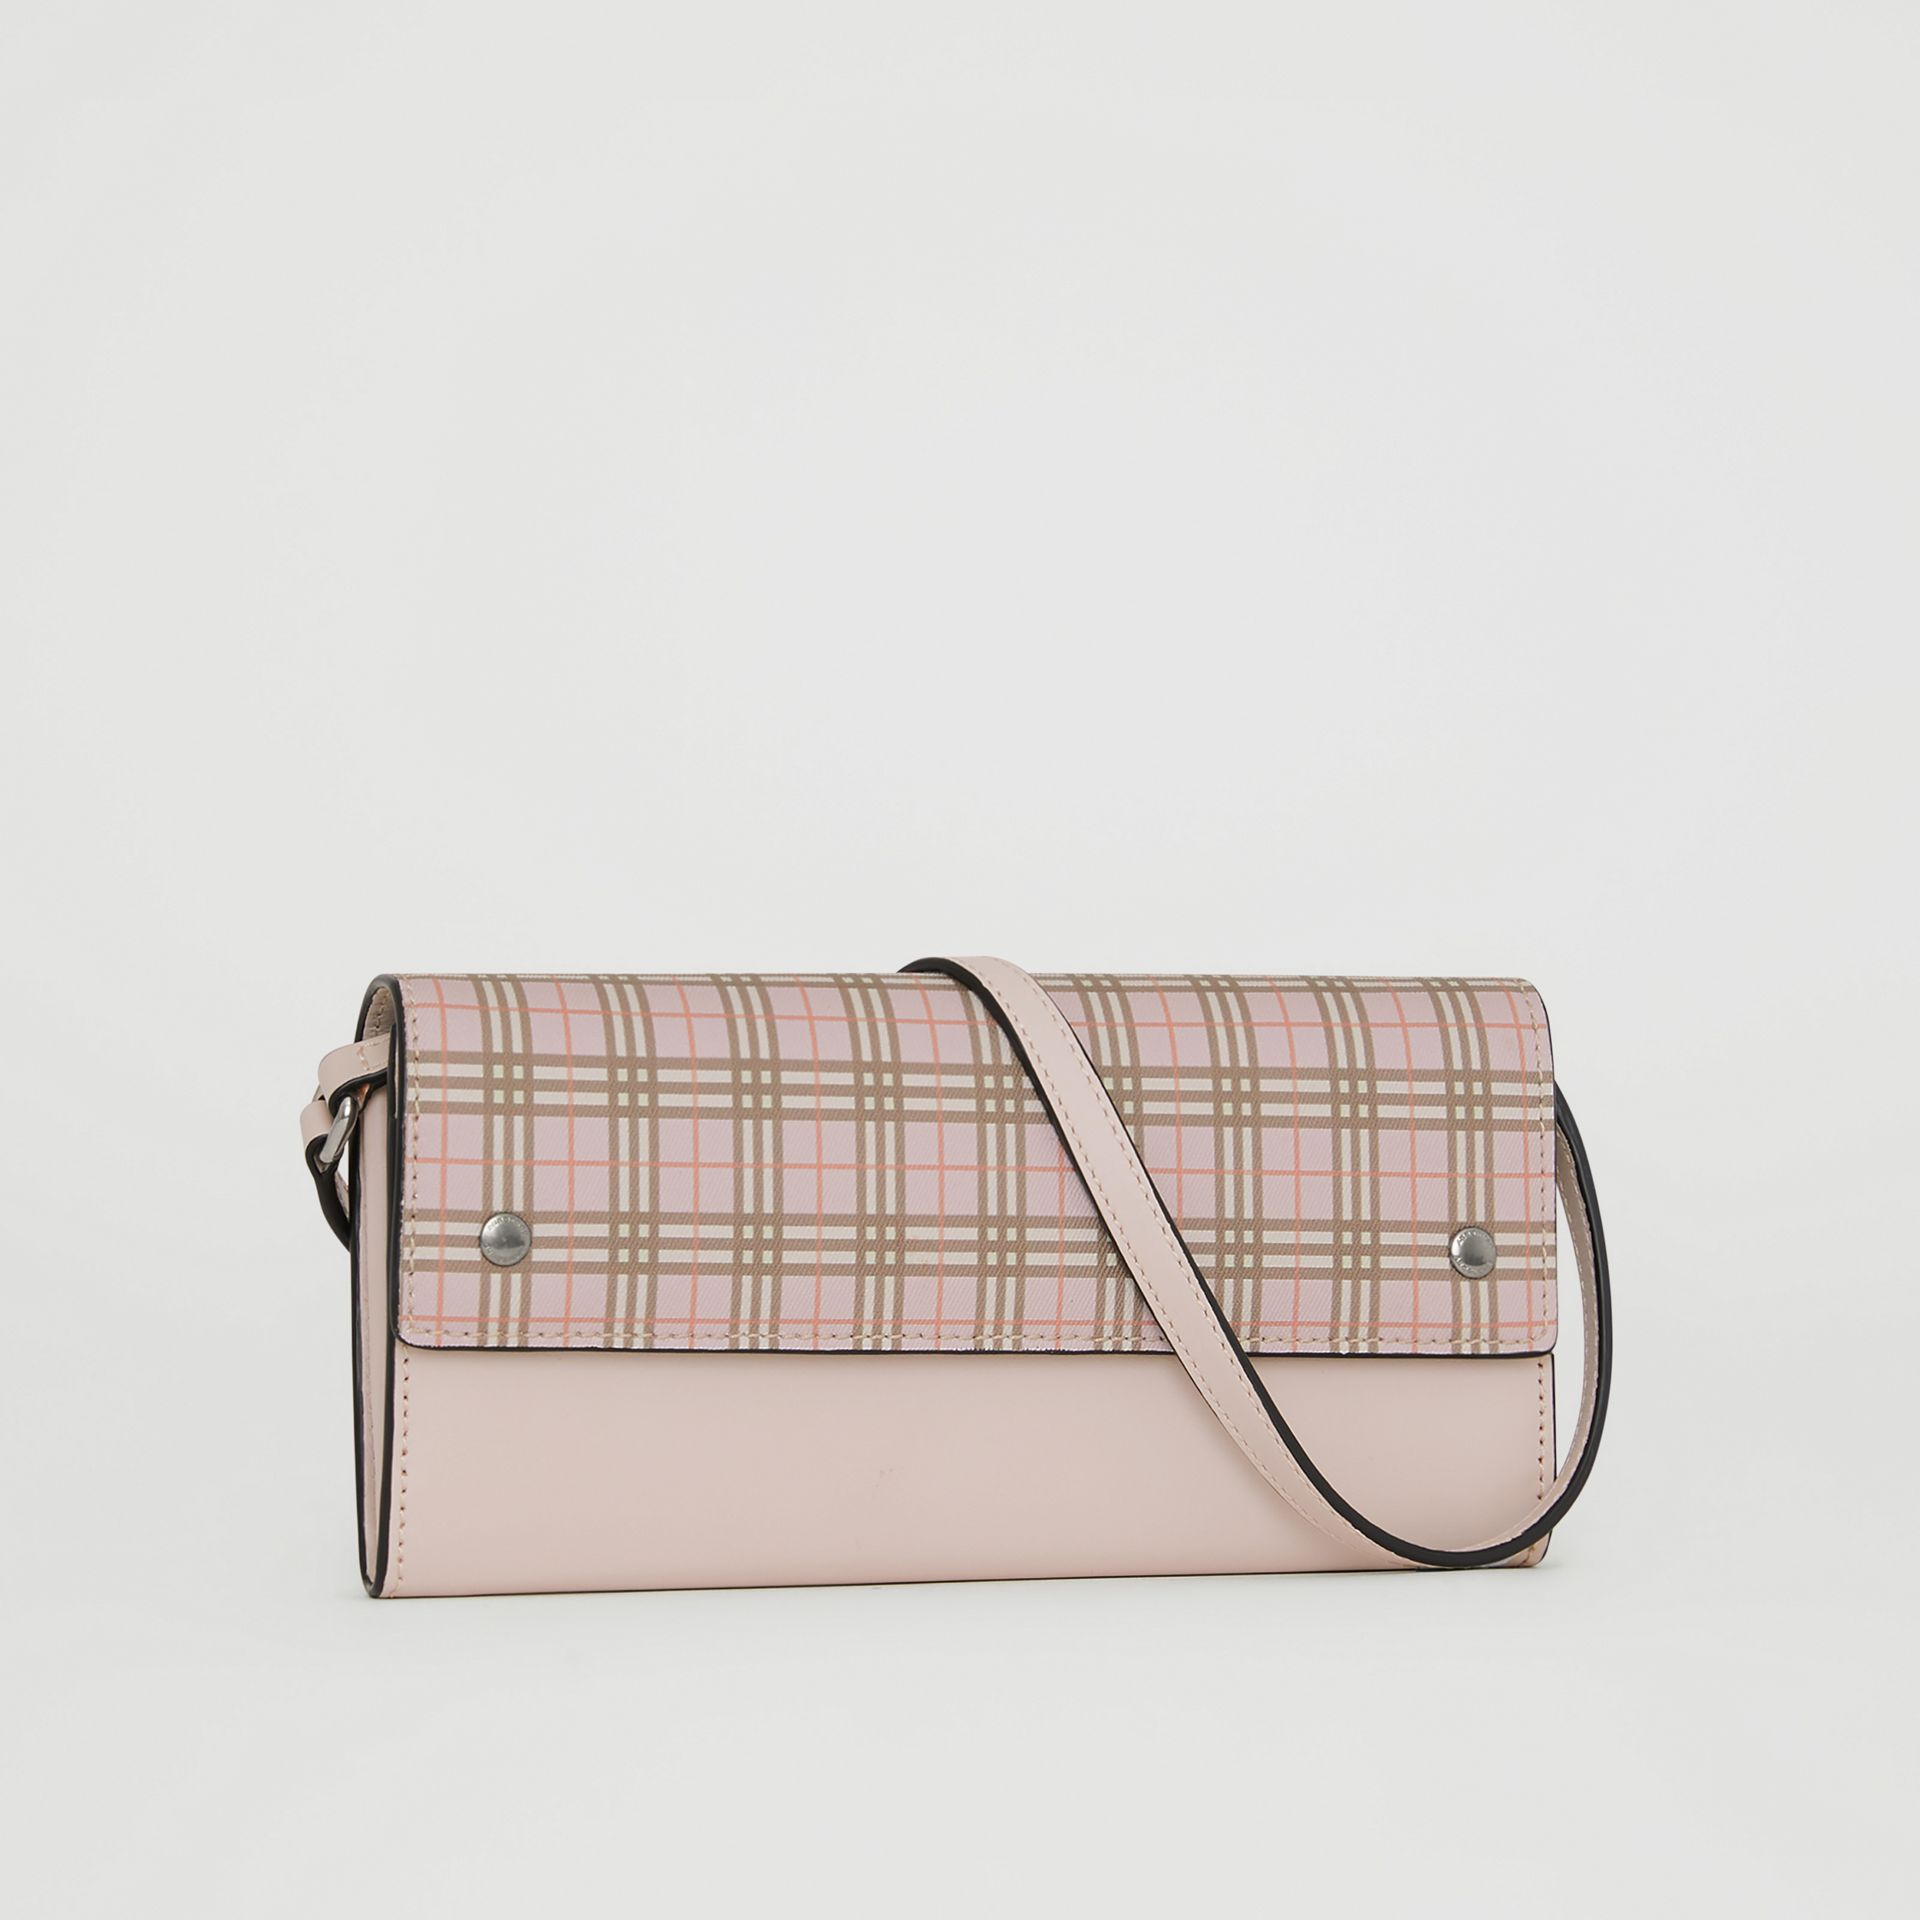 Portefeuille à micro-motif check avec sangle amovible (Rose Glacé) - Femme | Burberry - photo de la galerie 4